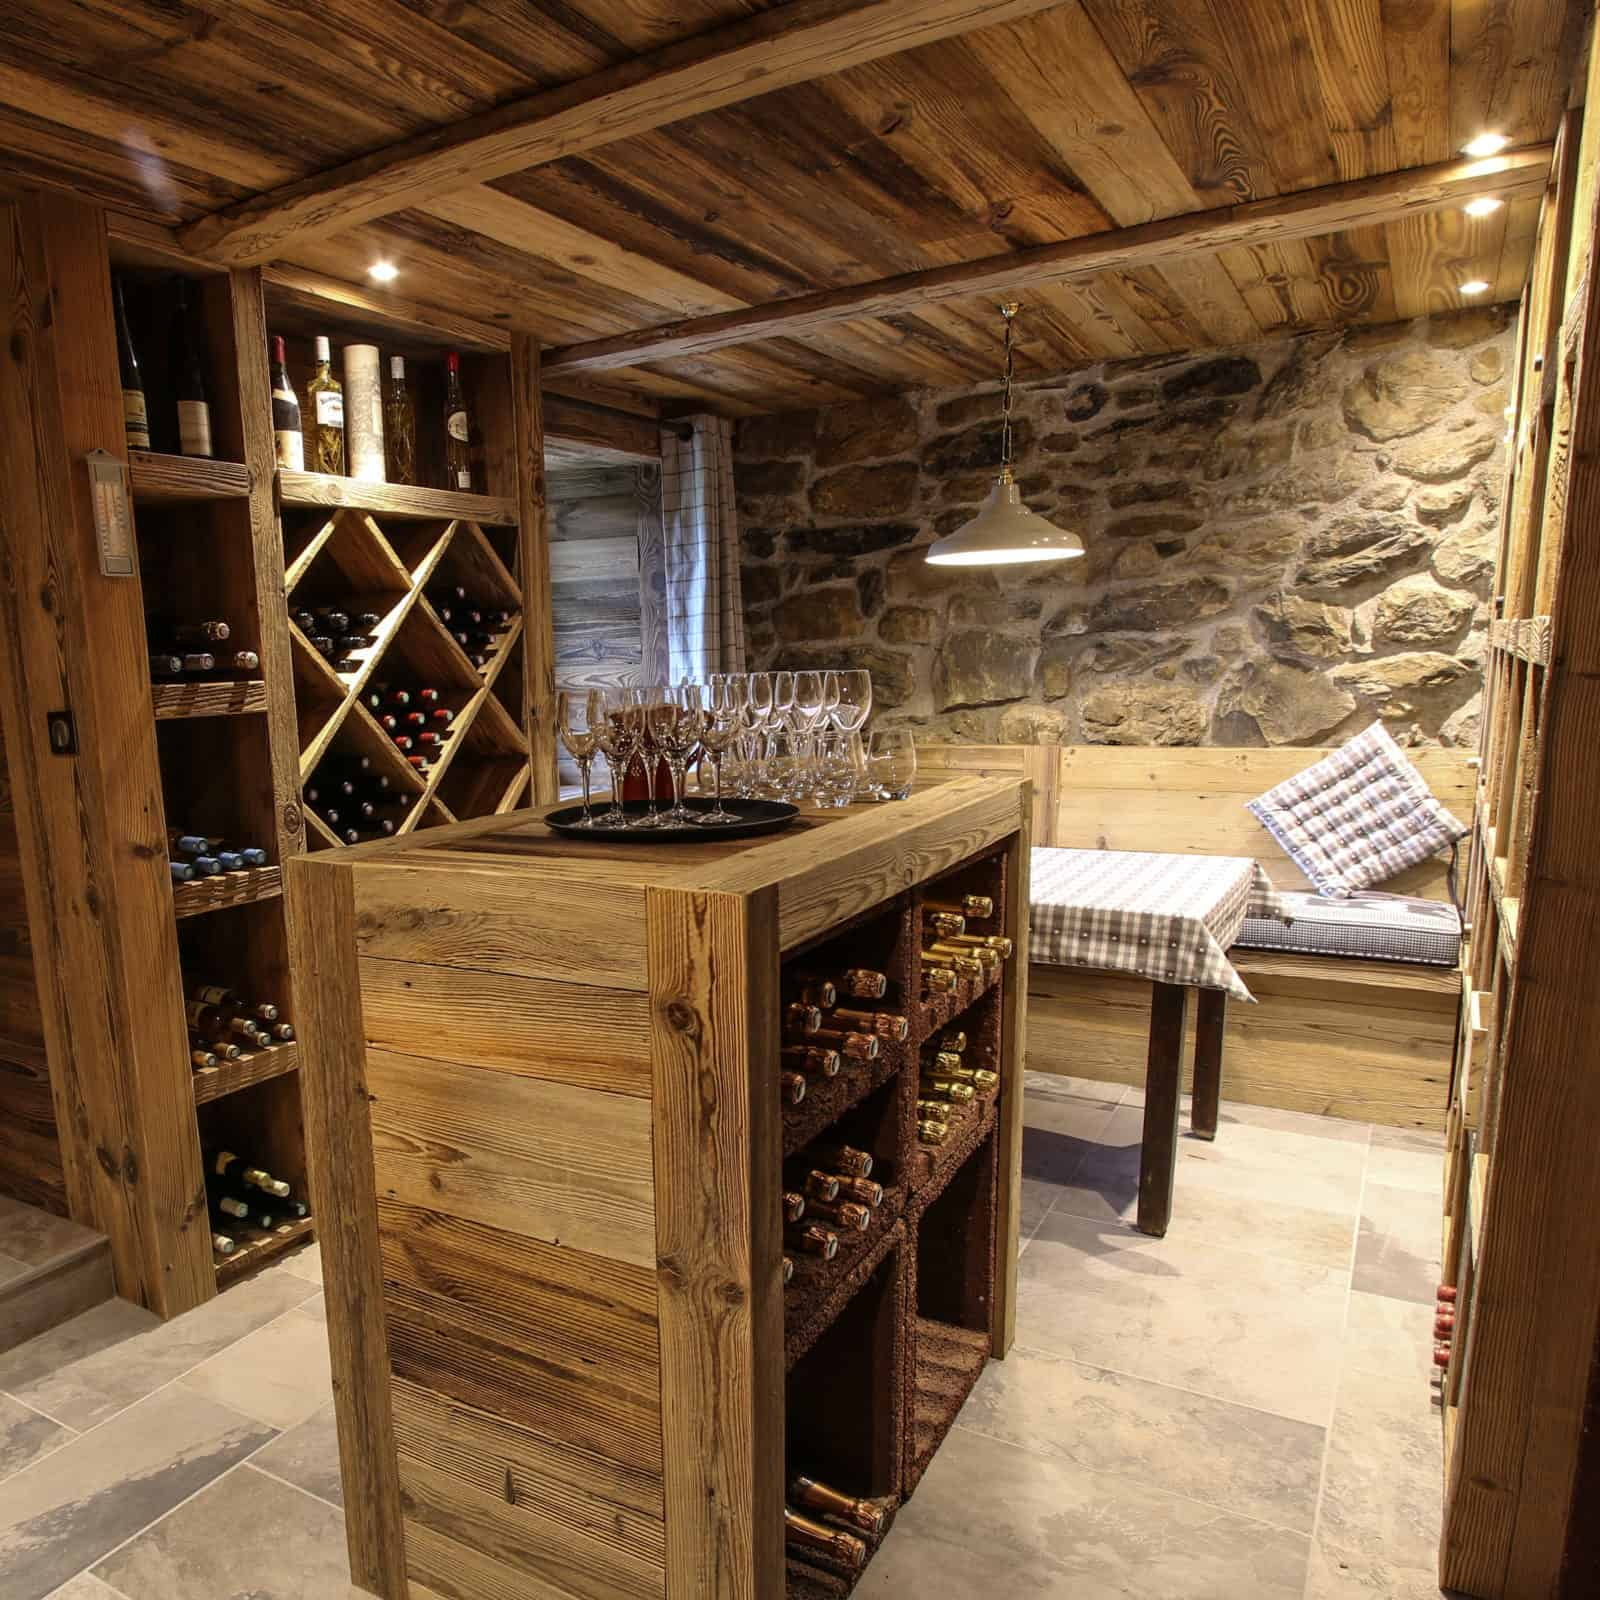 wine in the carnotzet or wine cellar